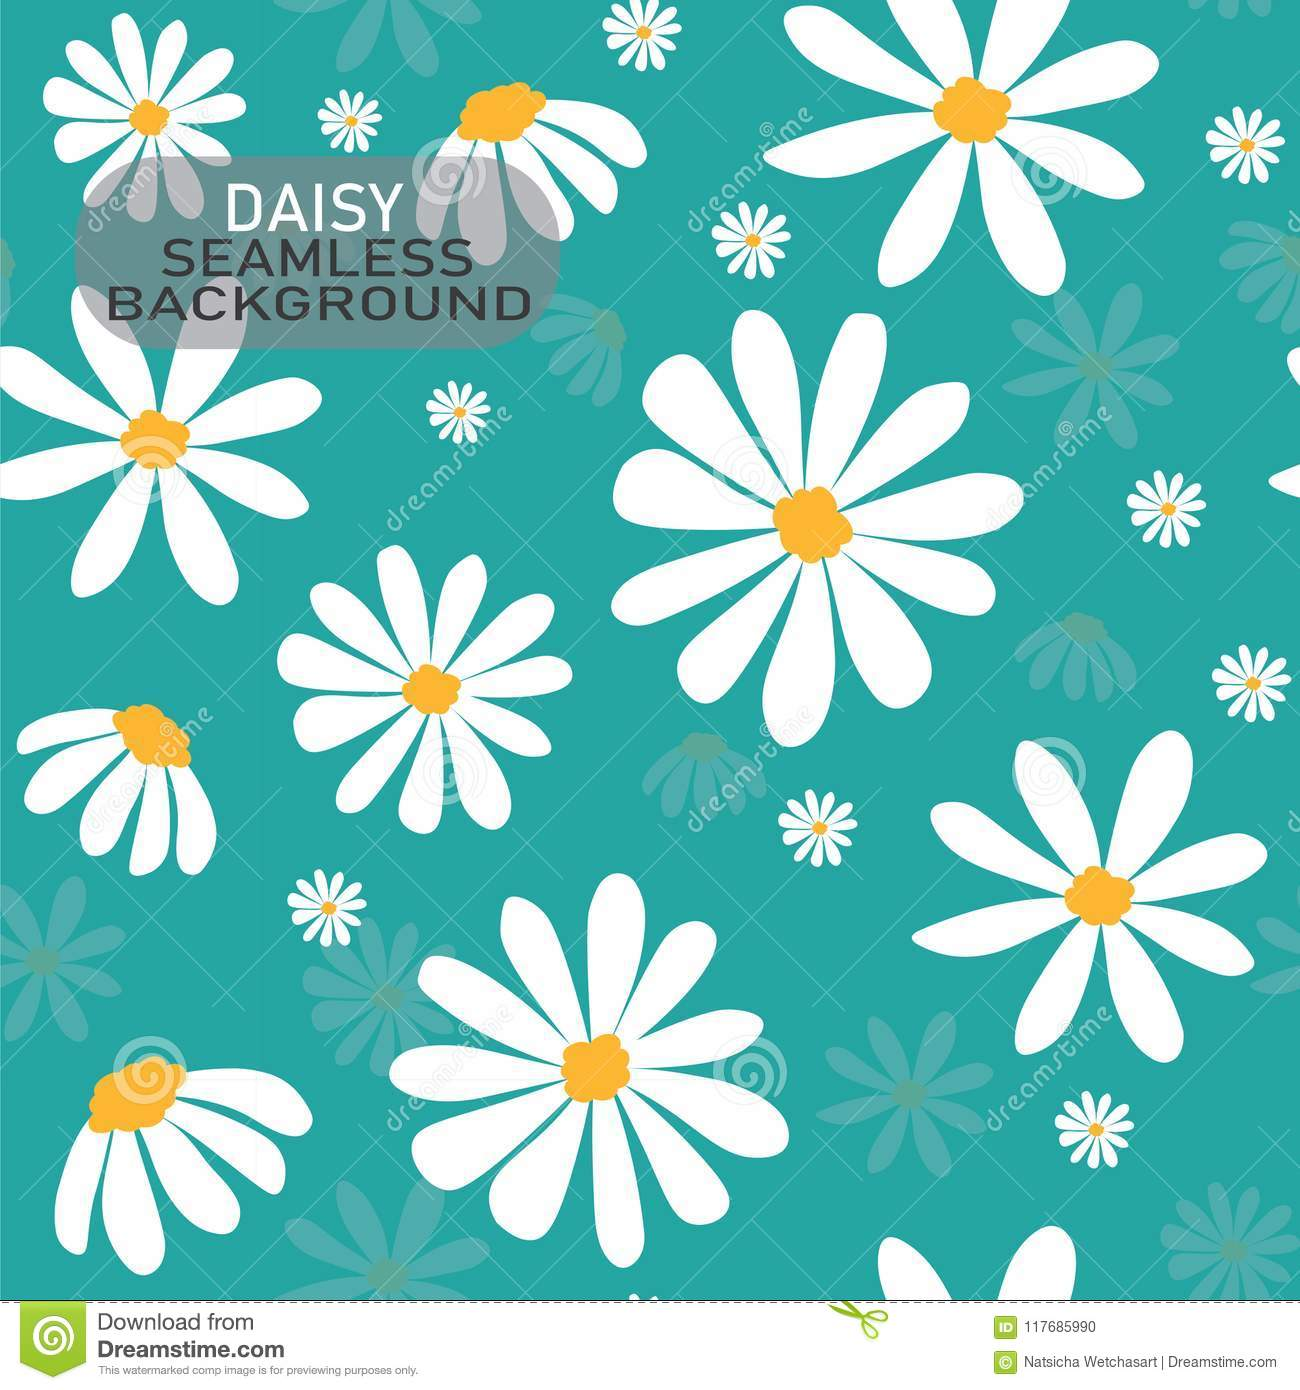 Vector doodle white daisy flower pattern on pastel mint green background, seamless background